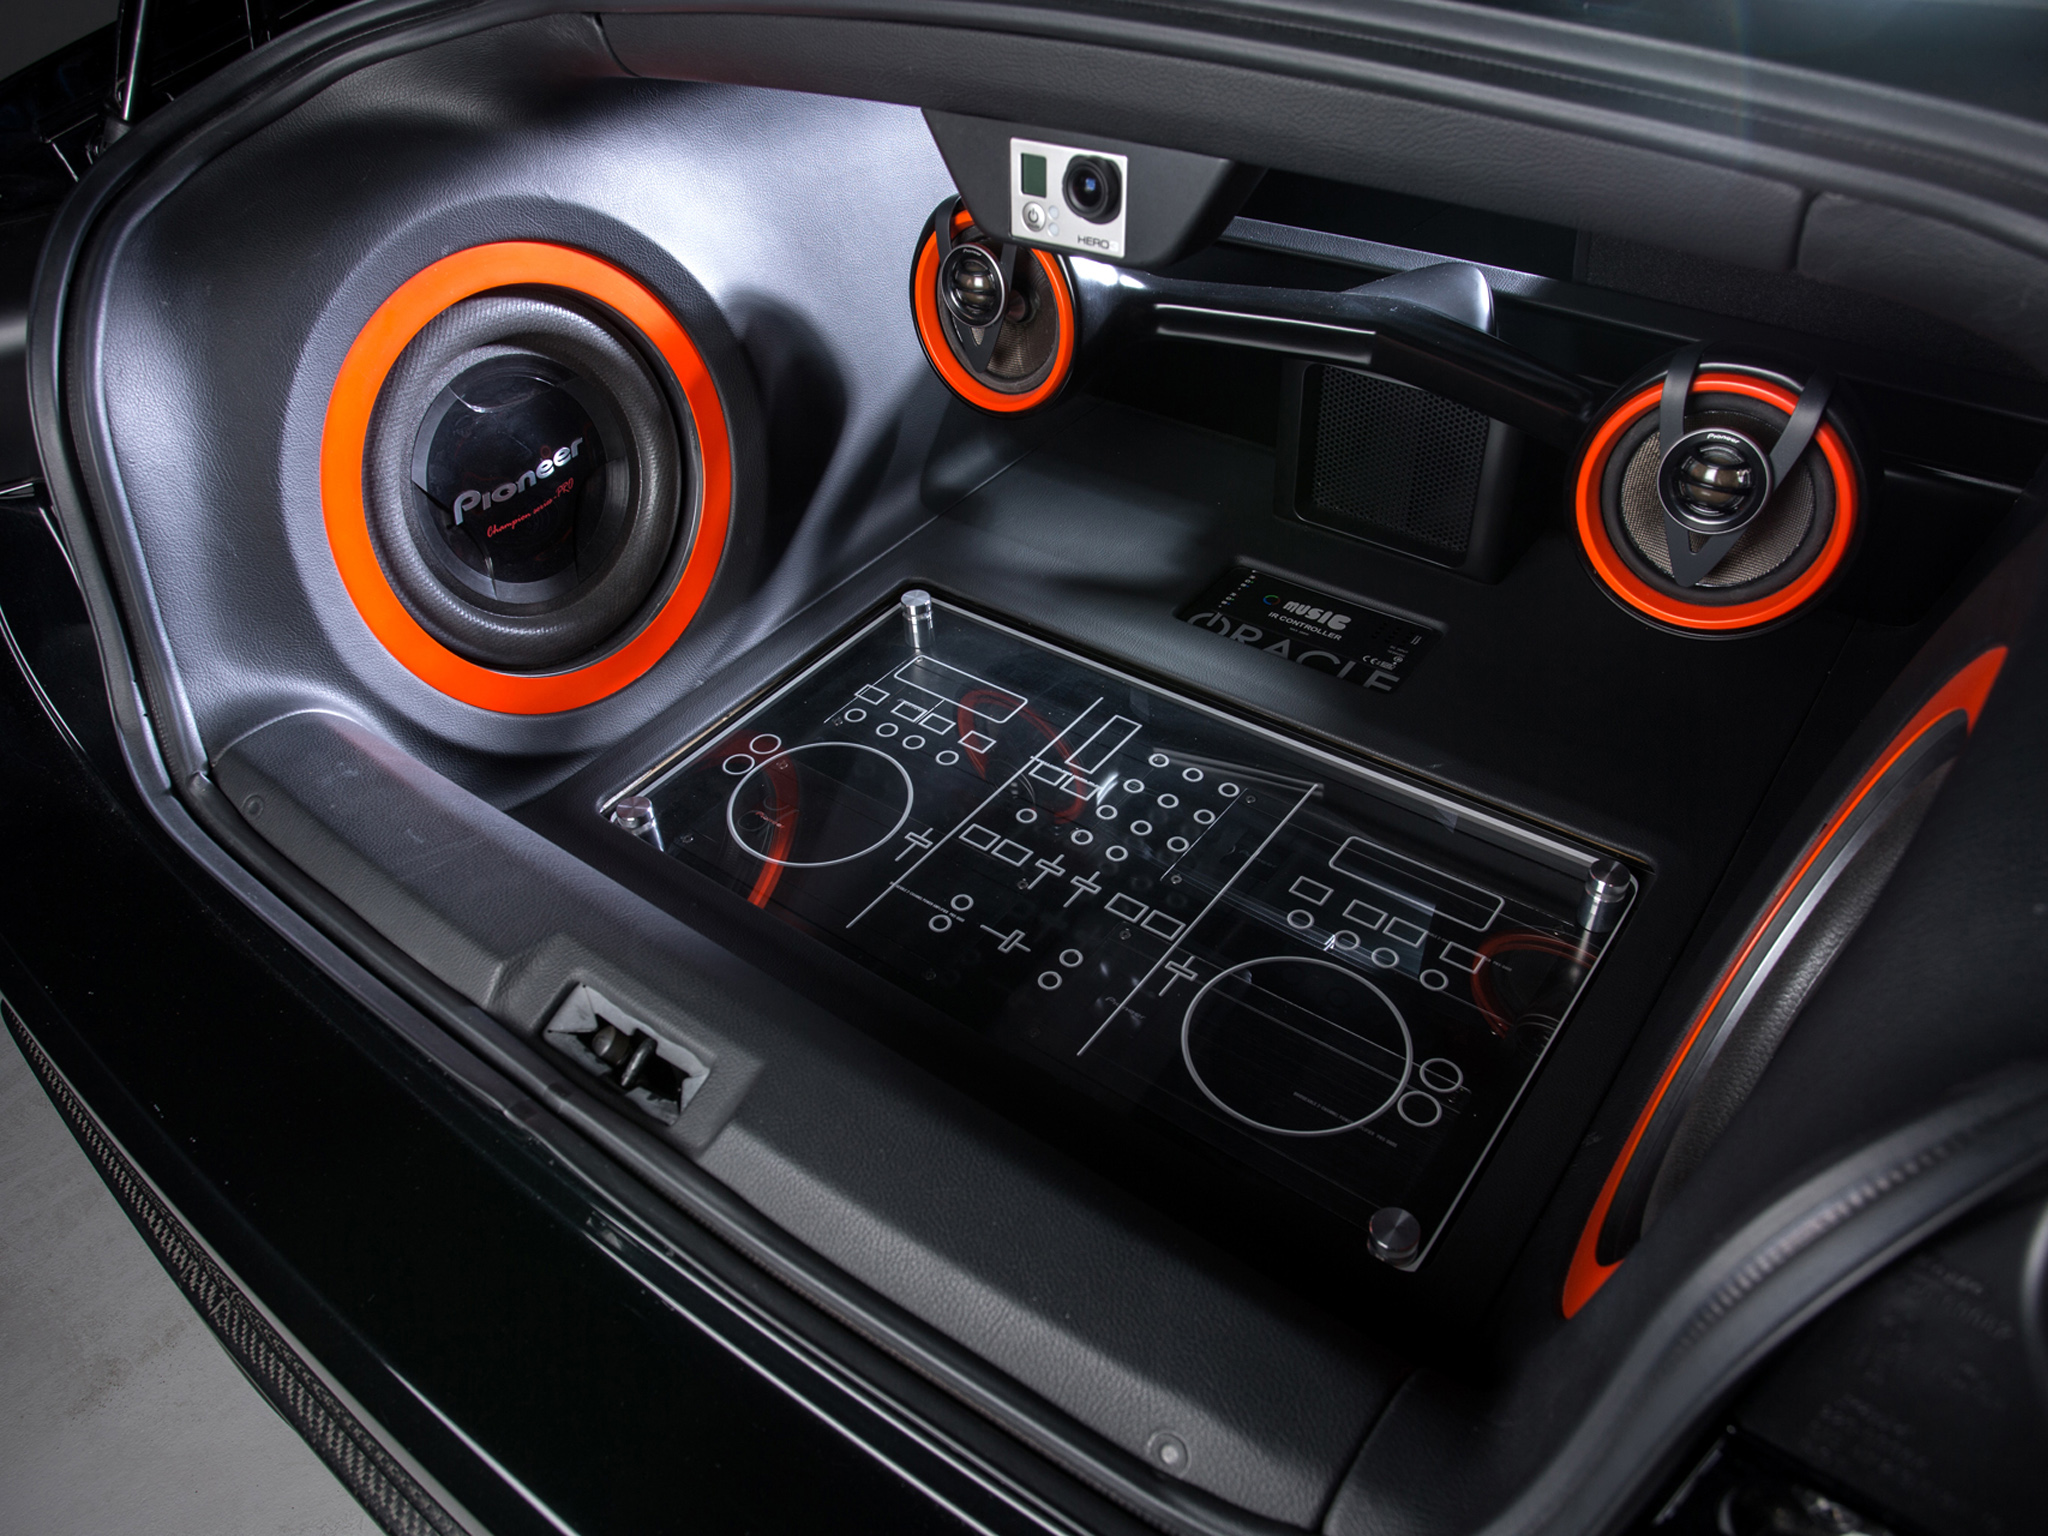 2014 Scion FR-S Interior